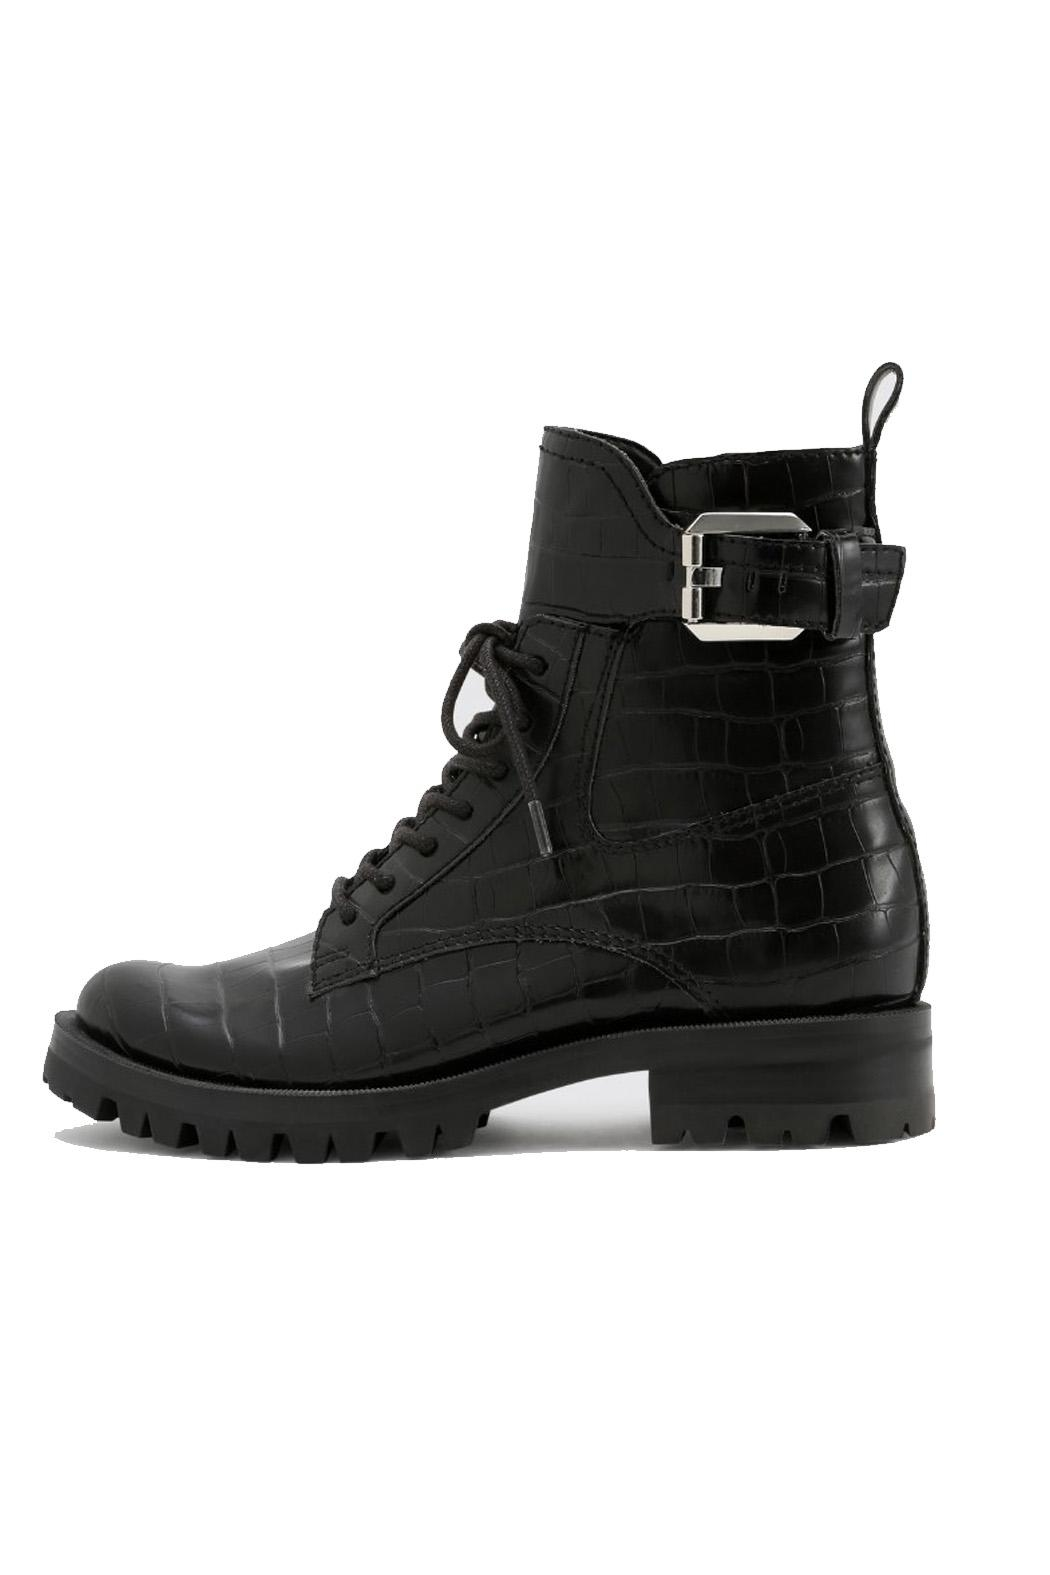 Dolce Vita Black Leather Boot - Main Image